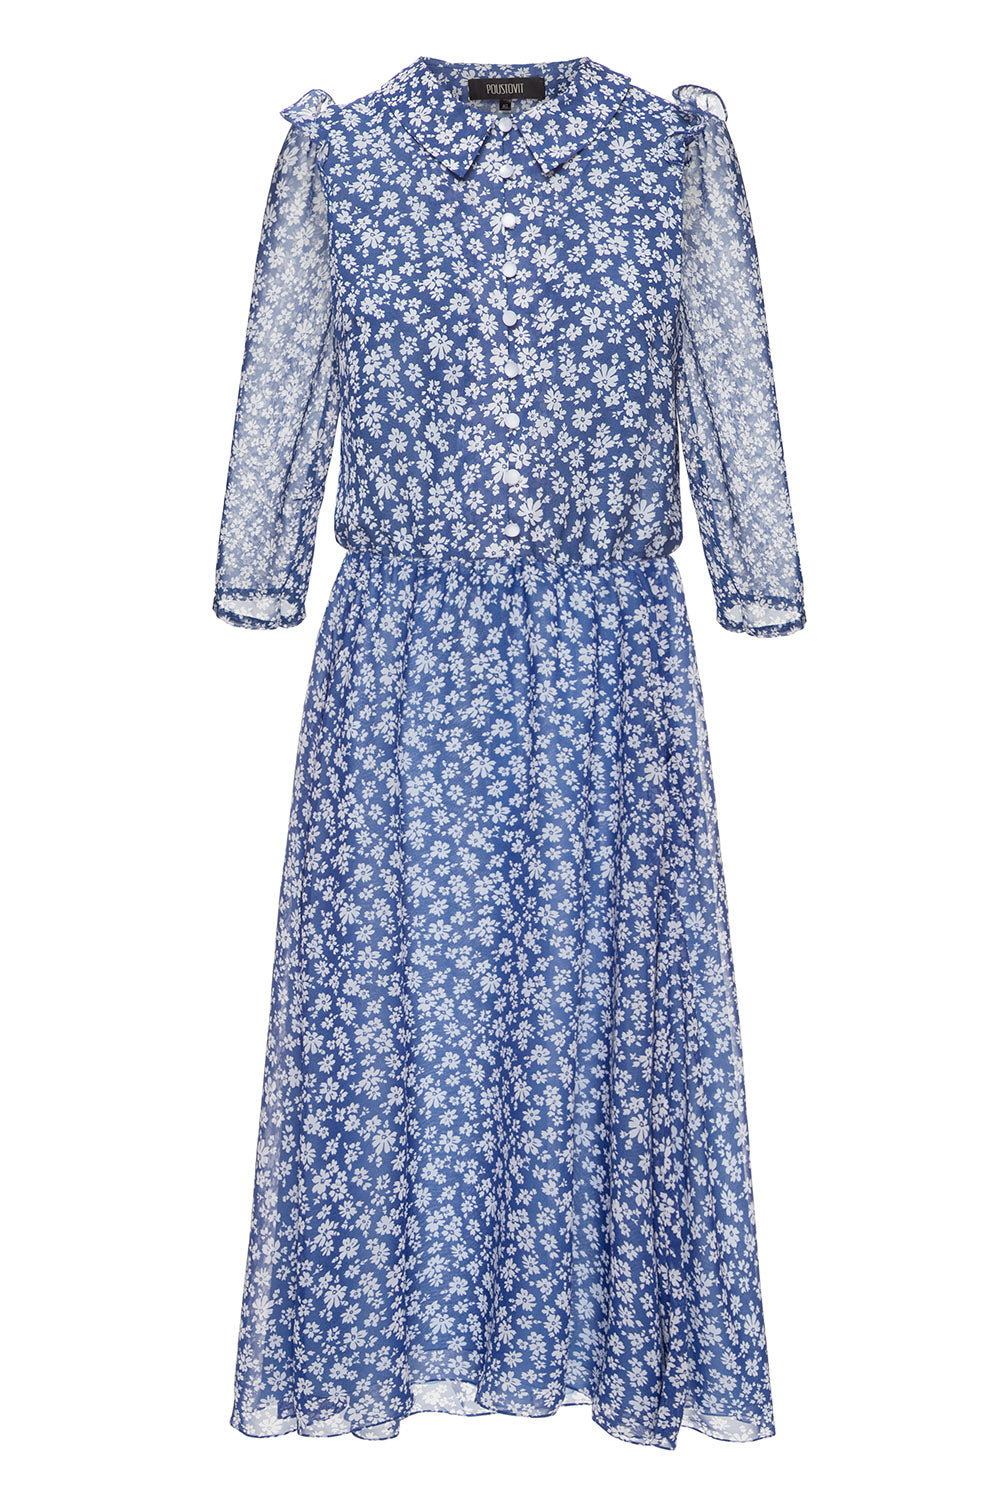 Blue chiffon printed dress